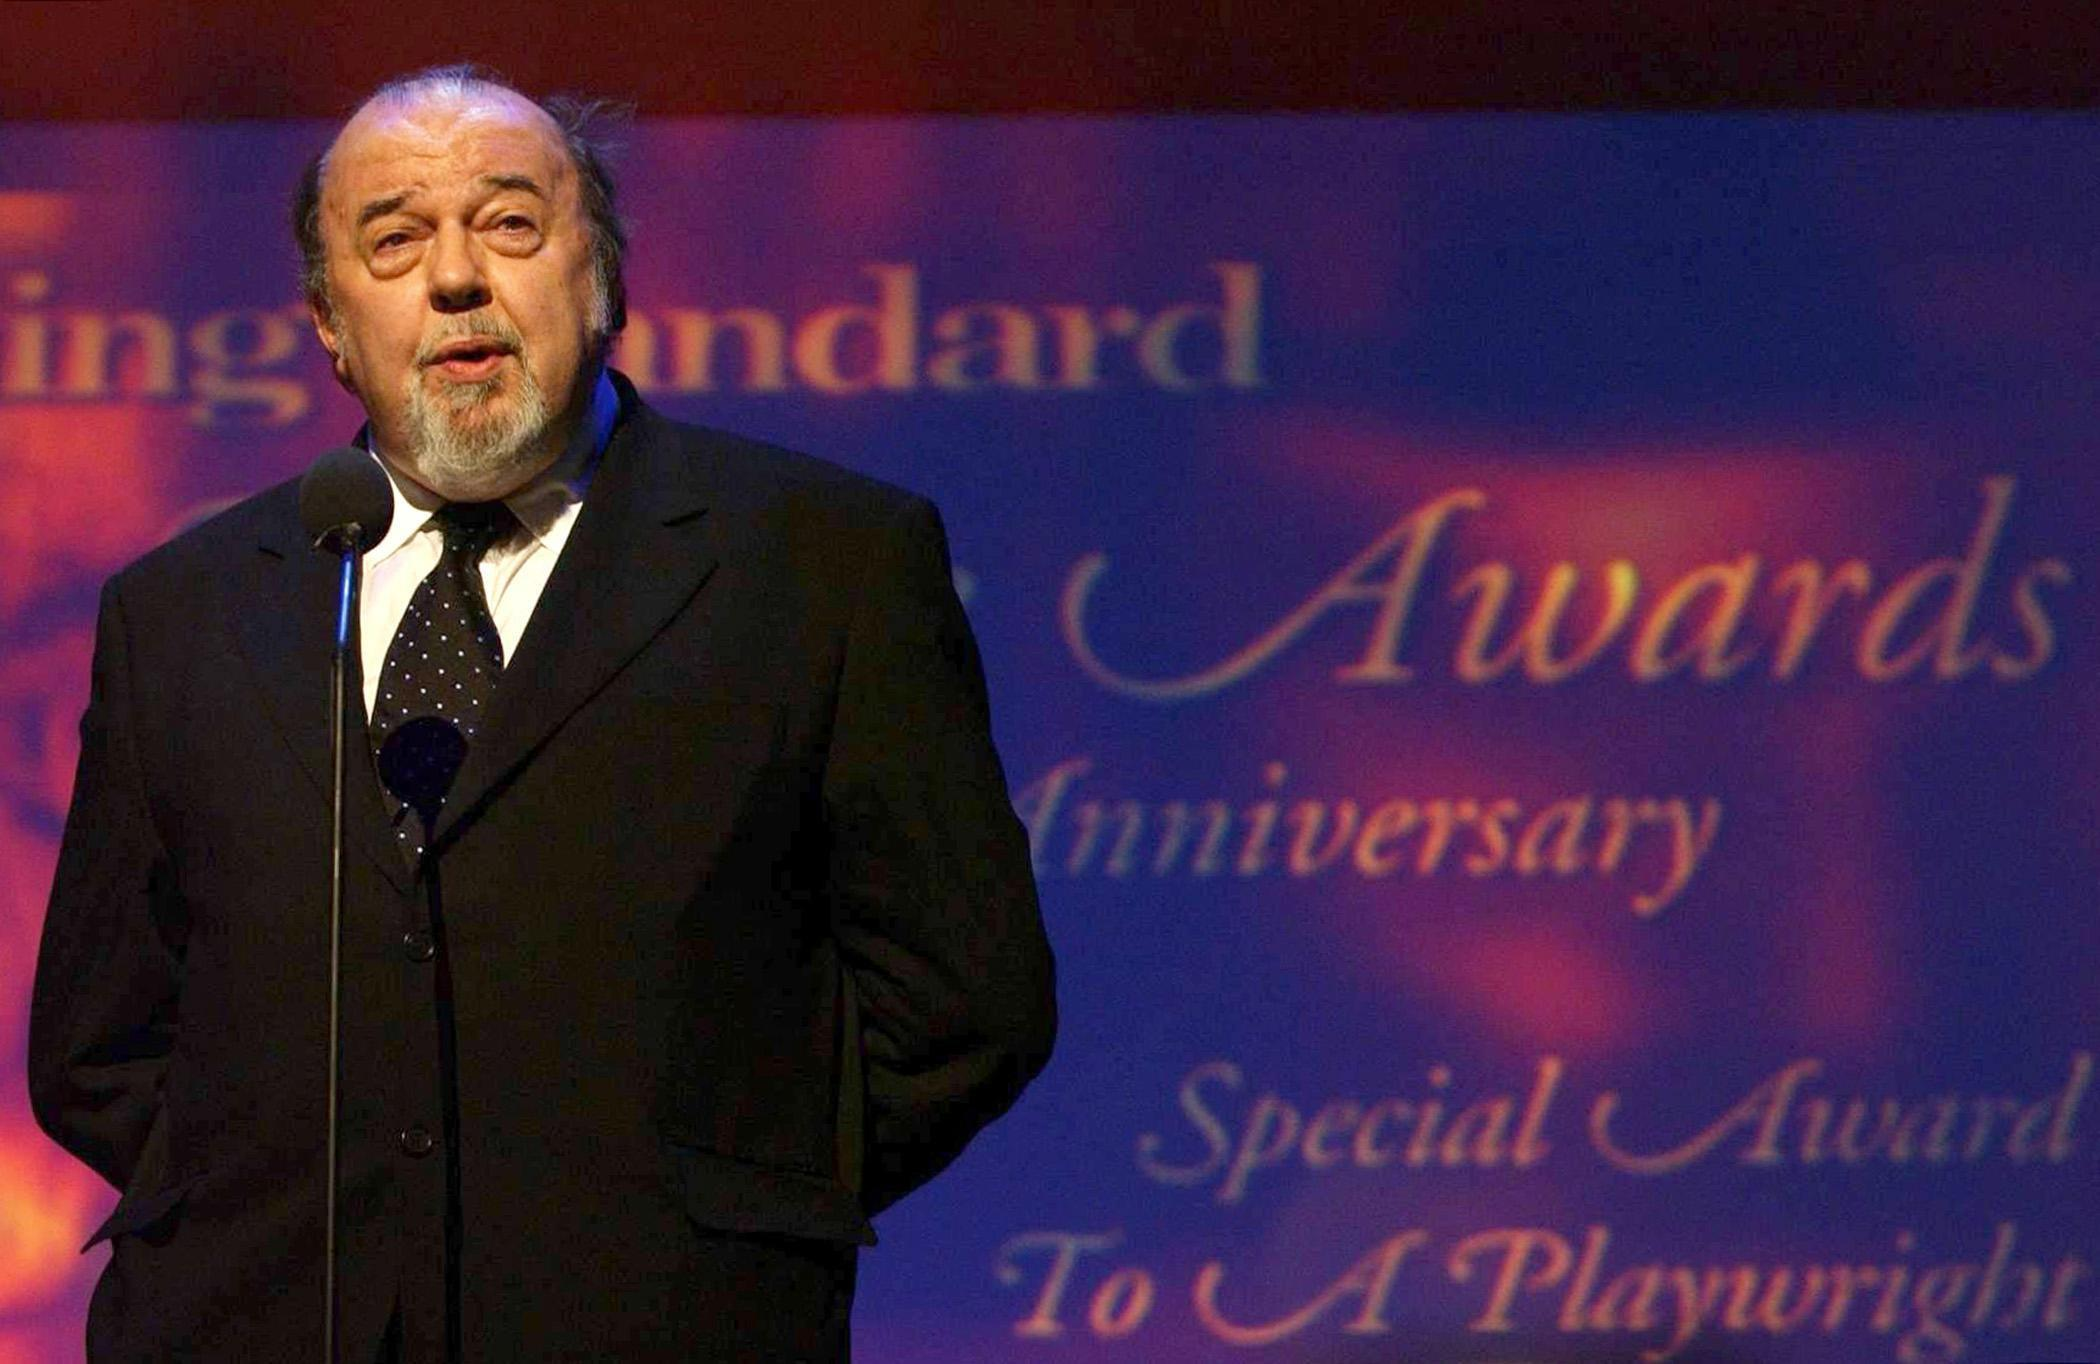 Theatre legend, Sir Peter Hall, dies aged 86, while battling dementia